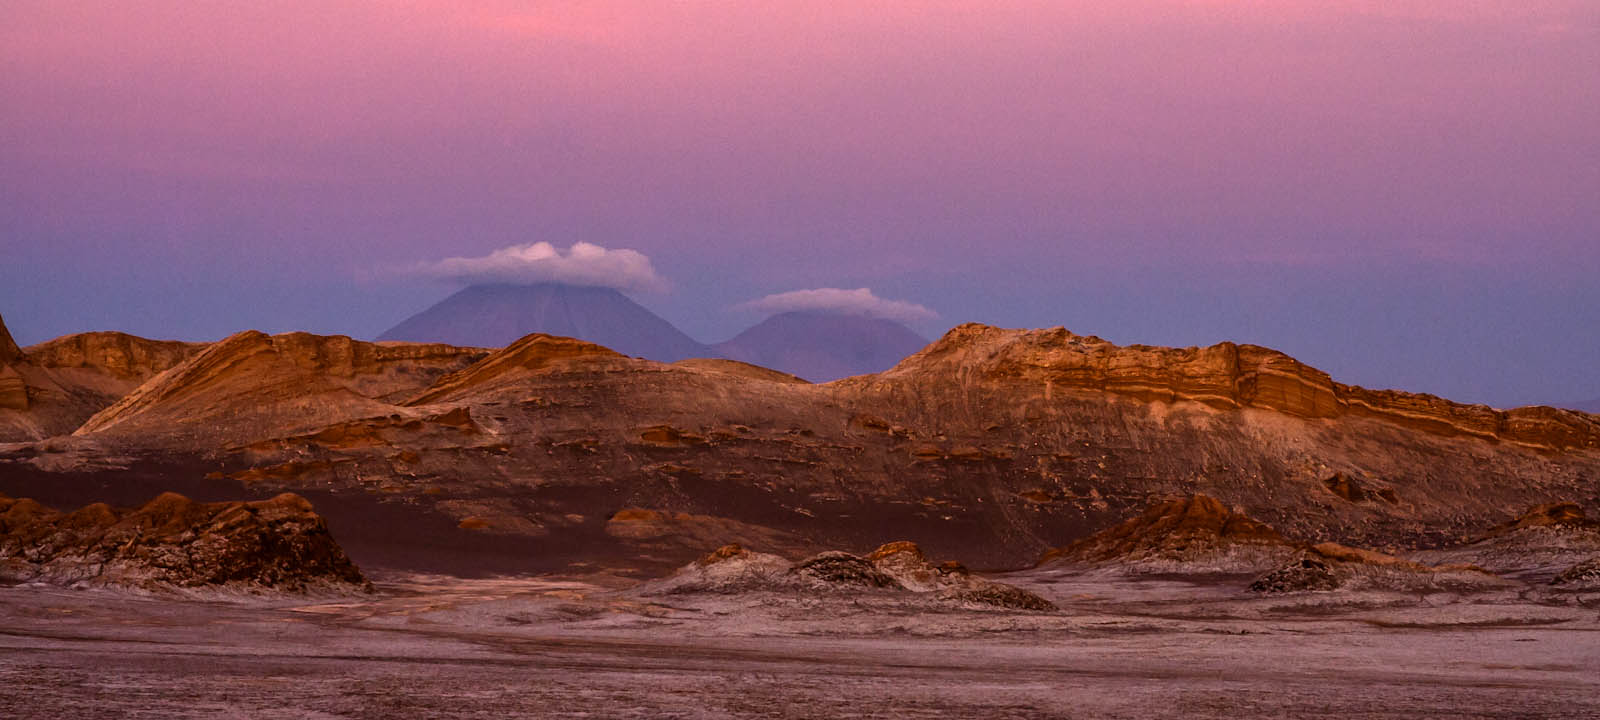 Valle de la Luna and the Atacama Desert